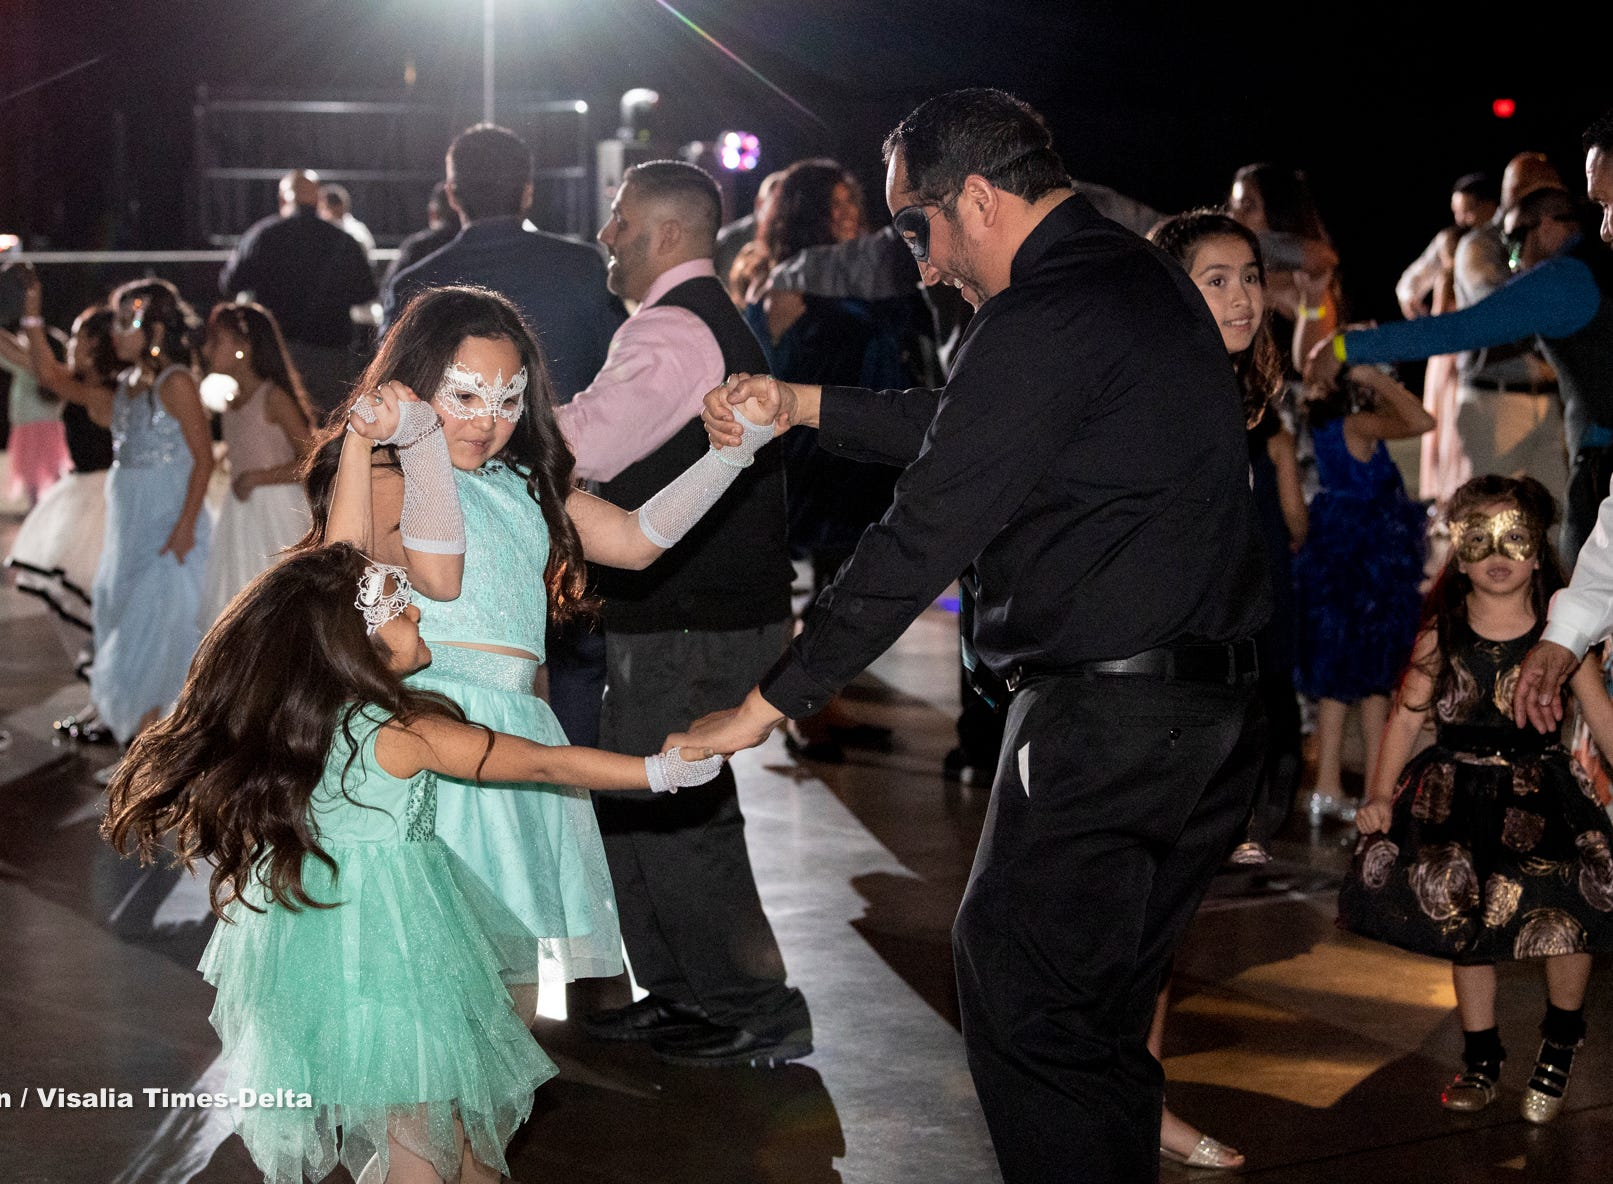 """Girls from 4 to 15 years old and father figures dance during the annual Father-Daughter Dance at the Visalia Convention Center on Saturday, February 16, 2019. This year's theme was """"Masquerade Ball,"""" and included music, dancing and refreshments."""